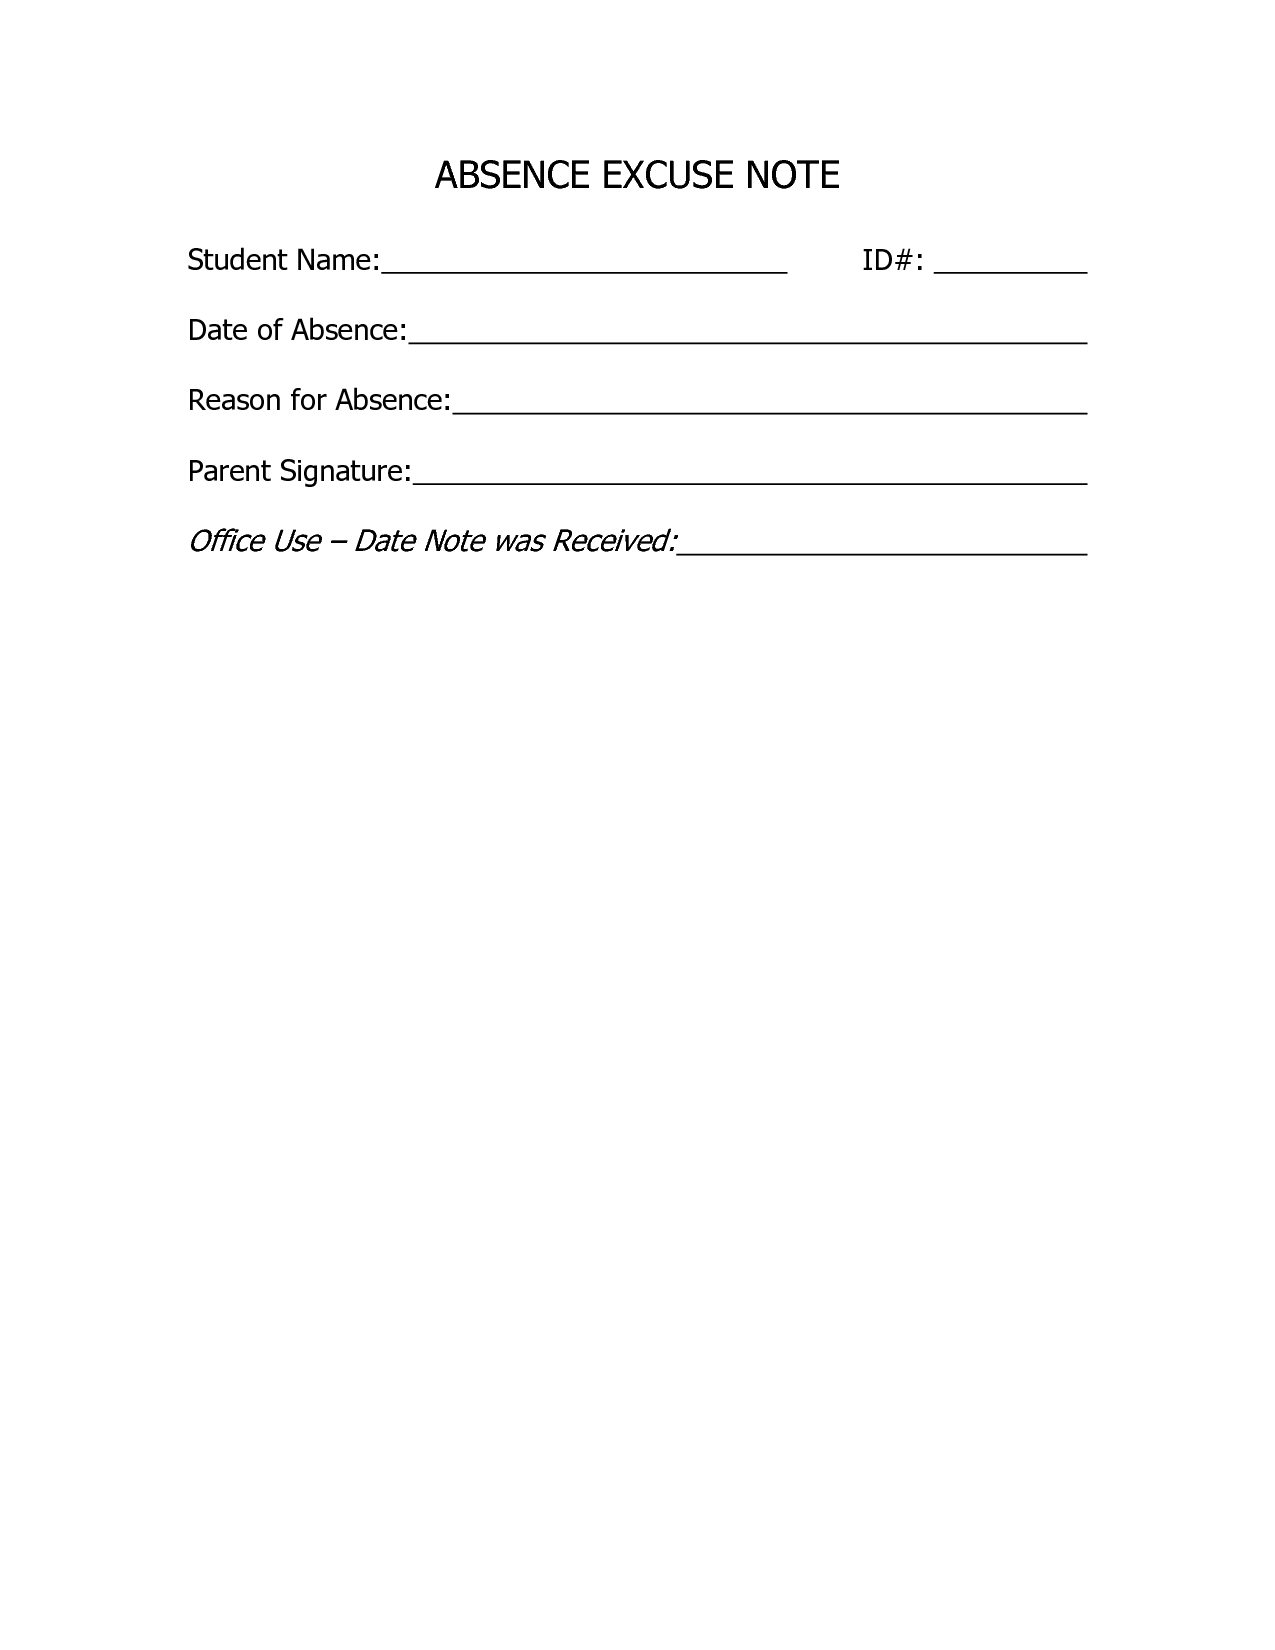 Charming School Absence Note Template Inspiration Absence Excuse